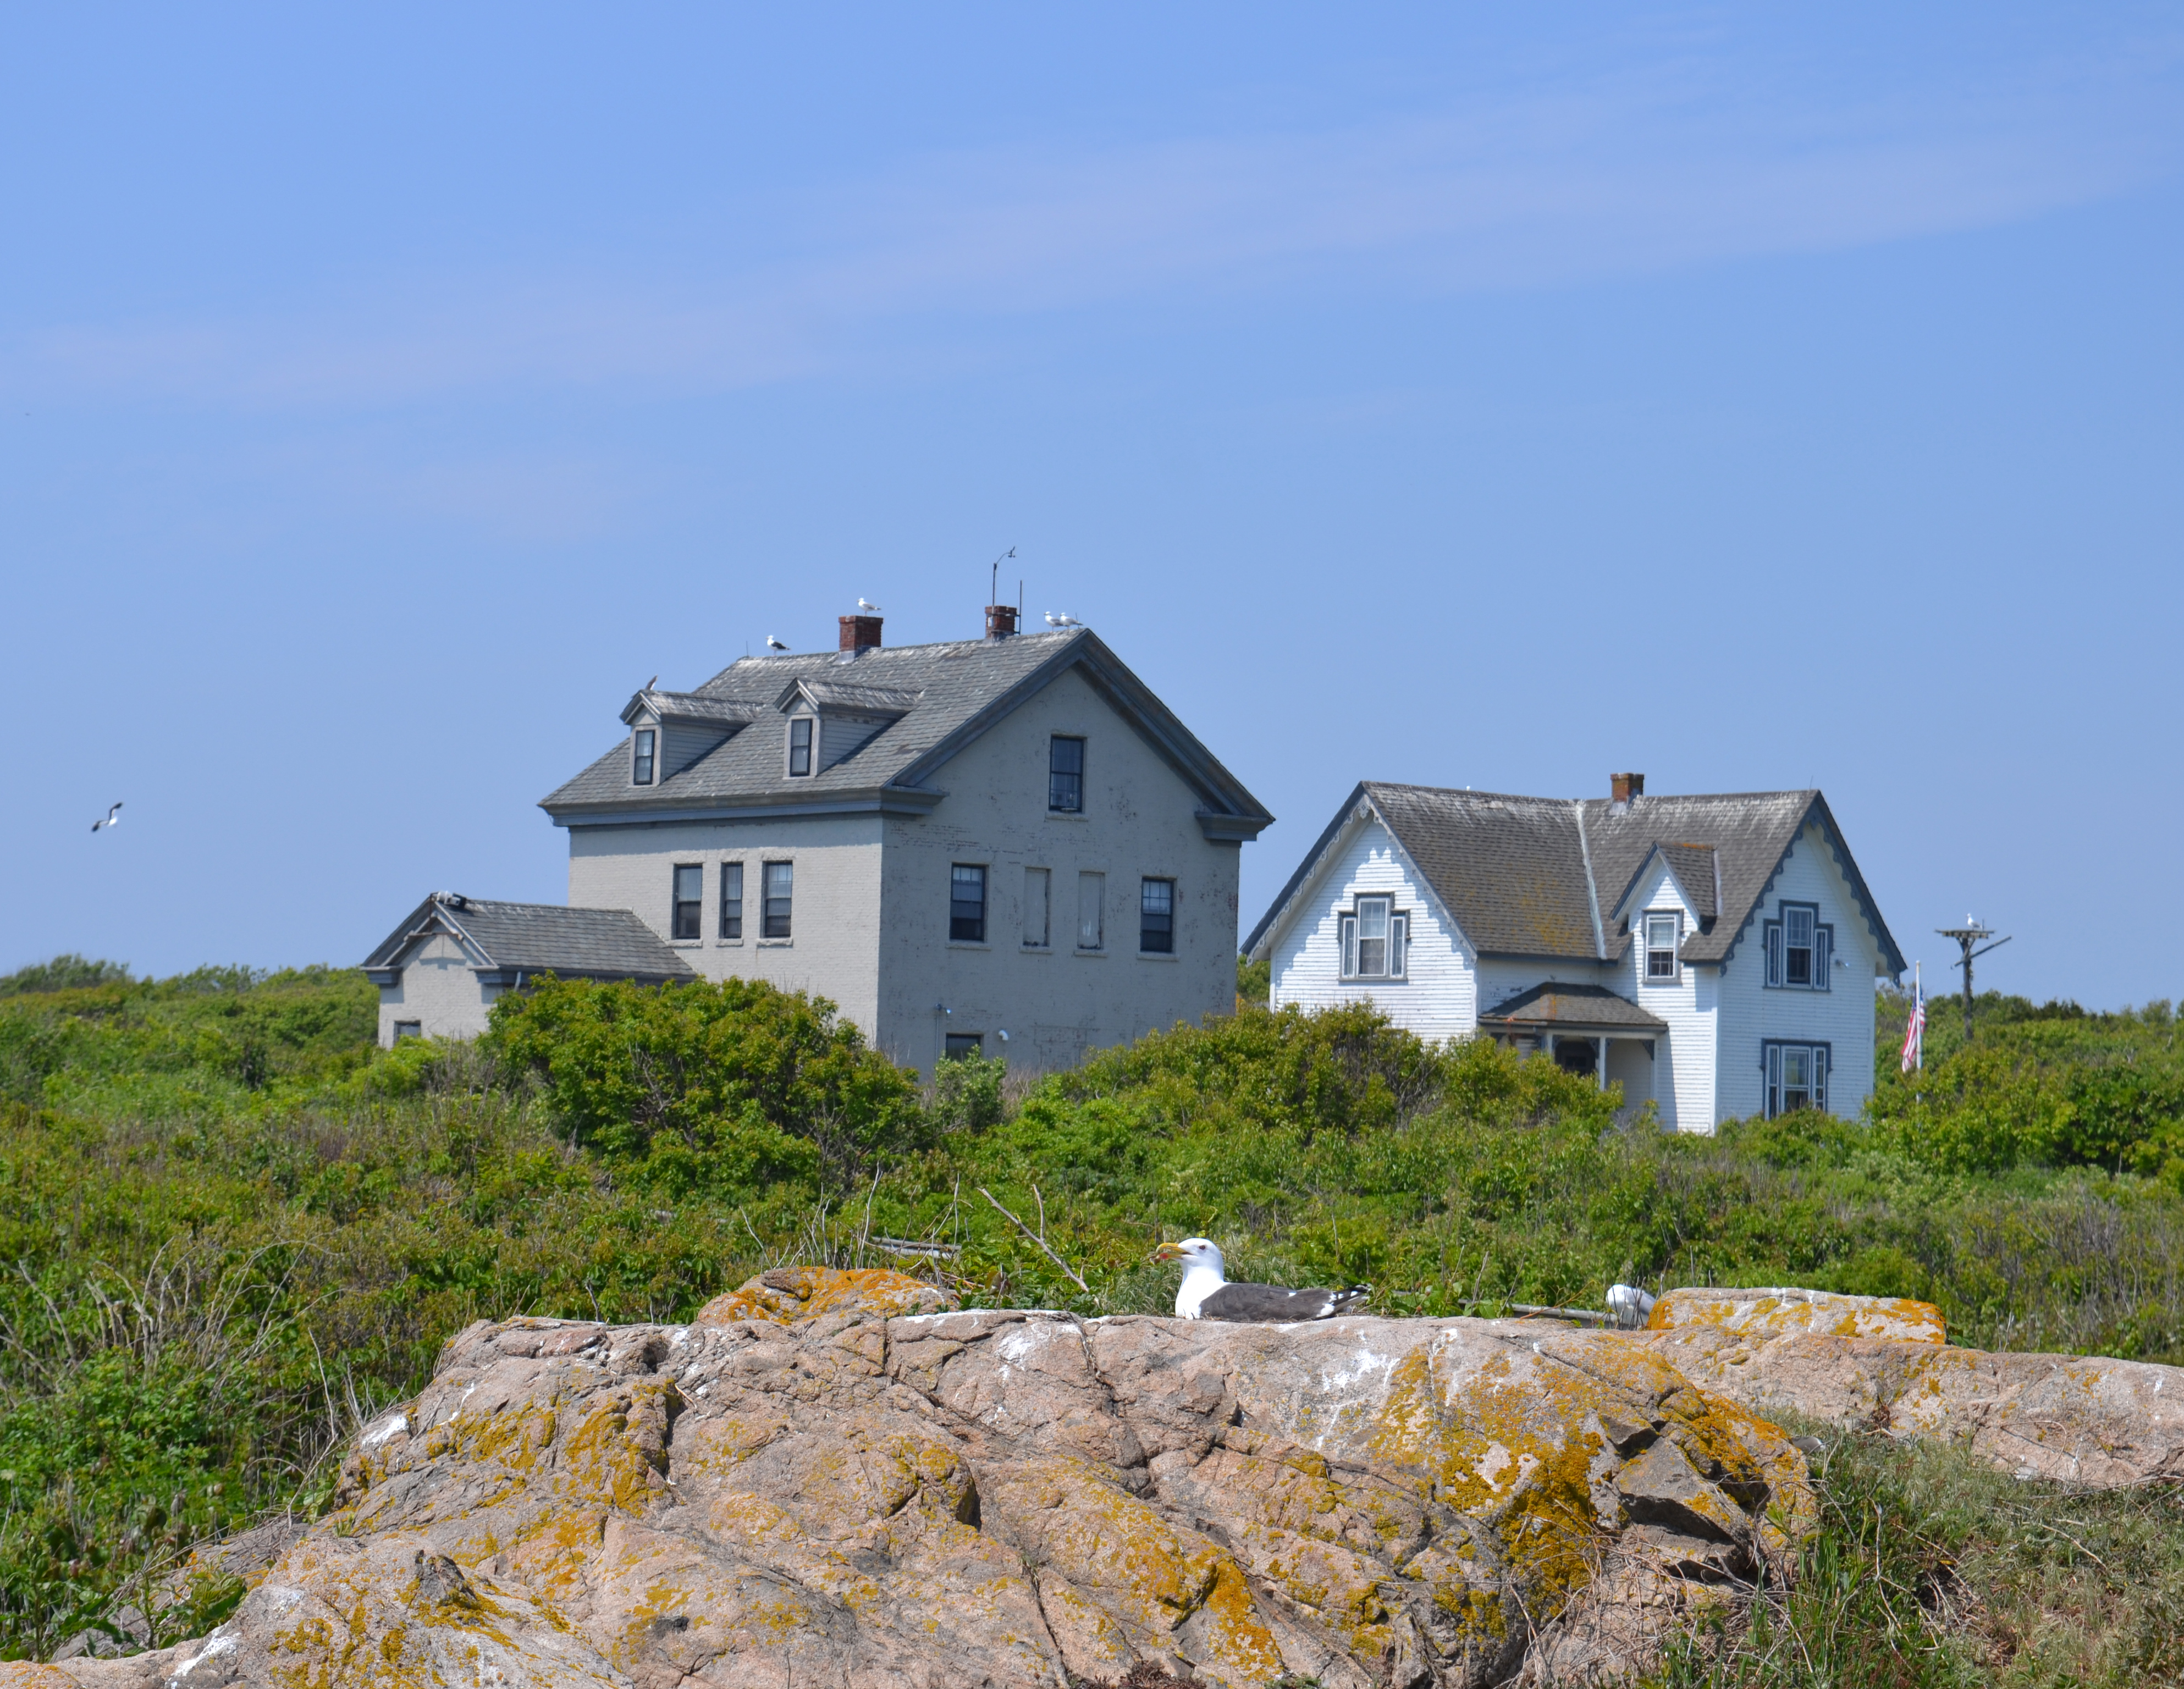 The keeper's houses on Thacher Island now house a small museum.  At one time, in the late 1800s, five families lived here, with 13 children.